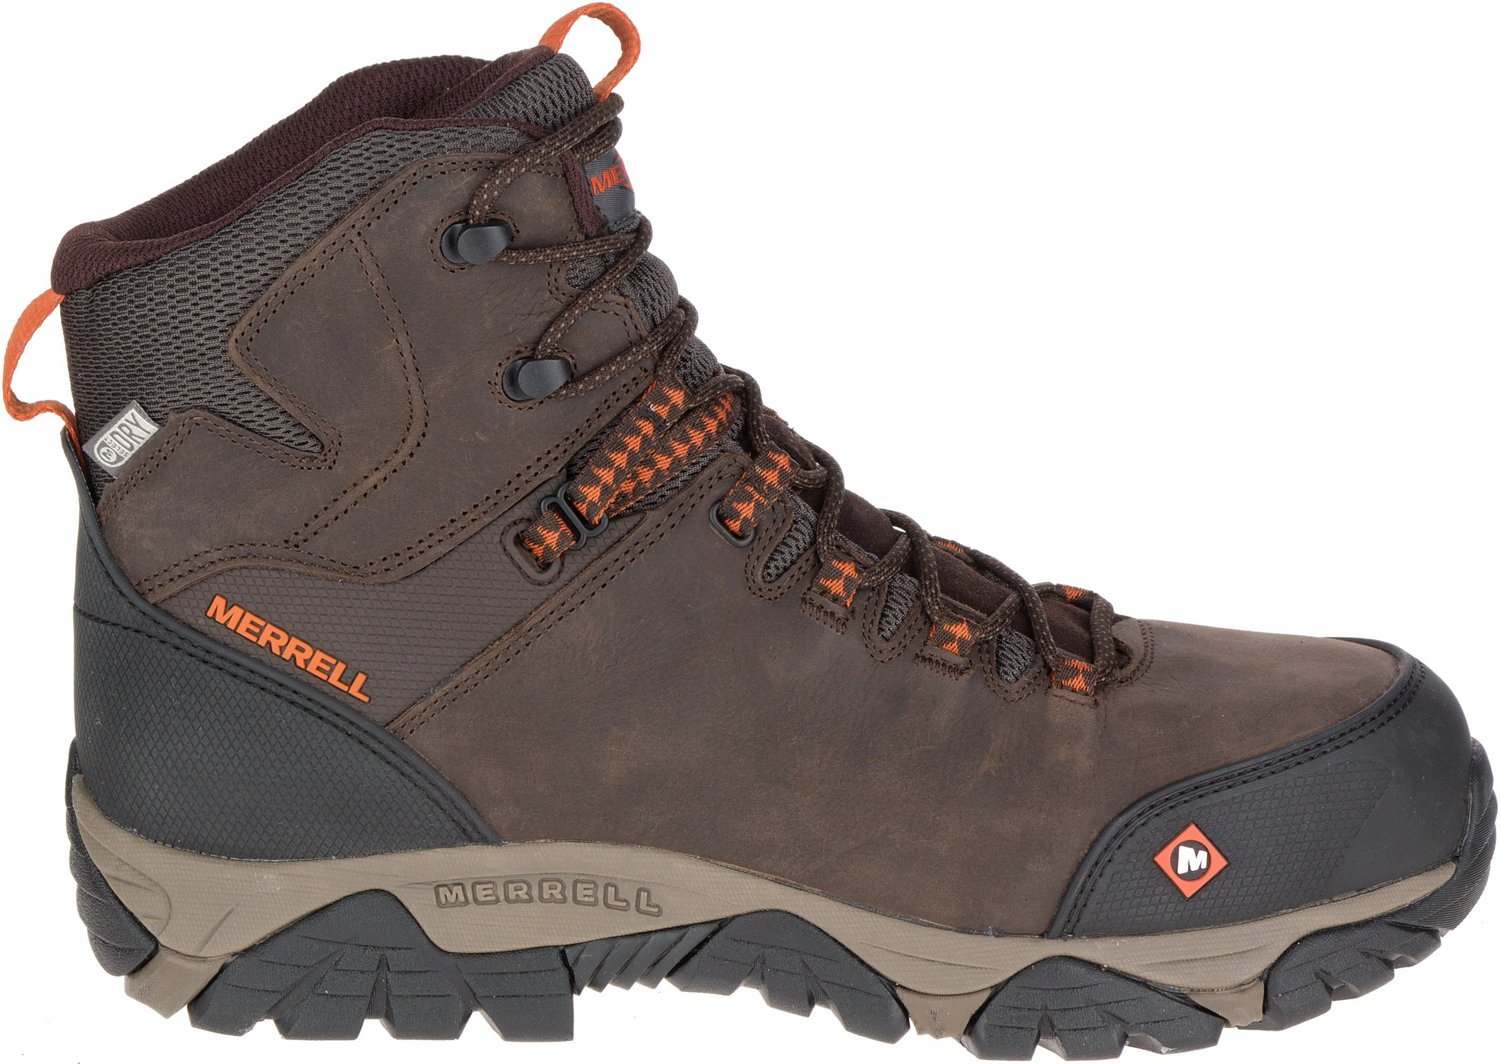 fb97974fef7 Merrell Men's Phaserbound Mid EH Composite Toe Lace Up Work Boots